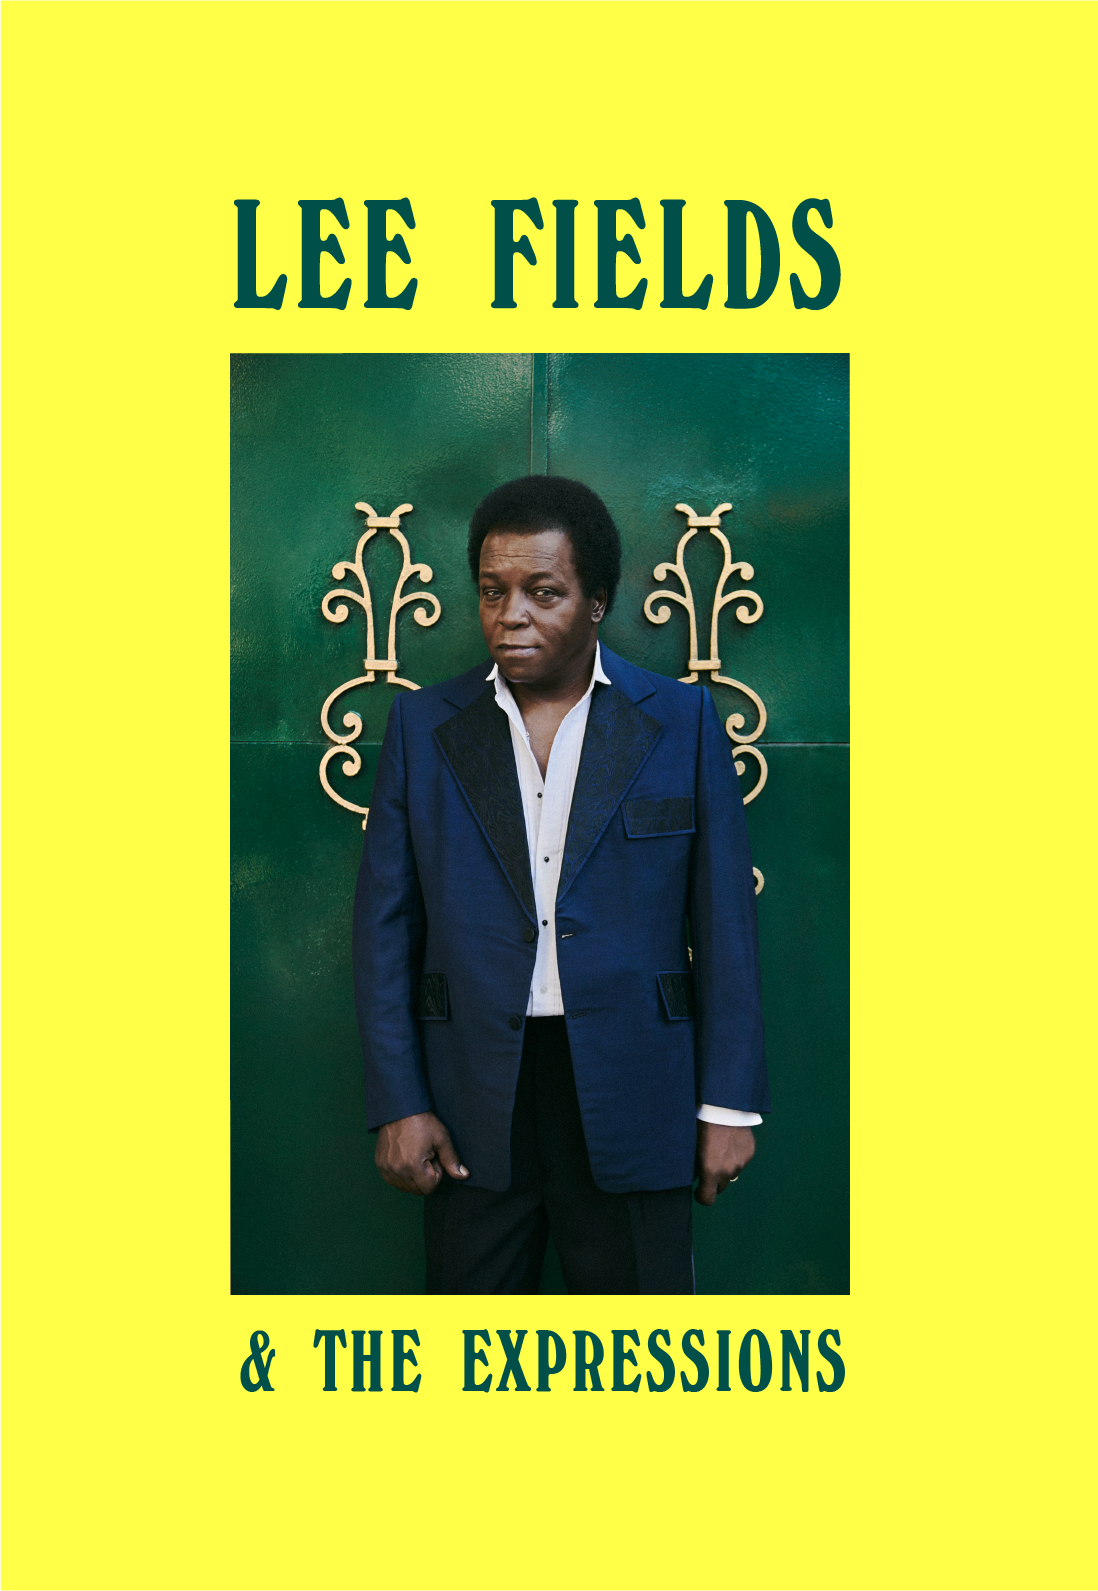 Poster for Lee Fields, Summer Tour 2017